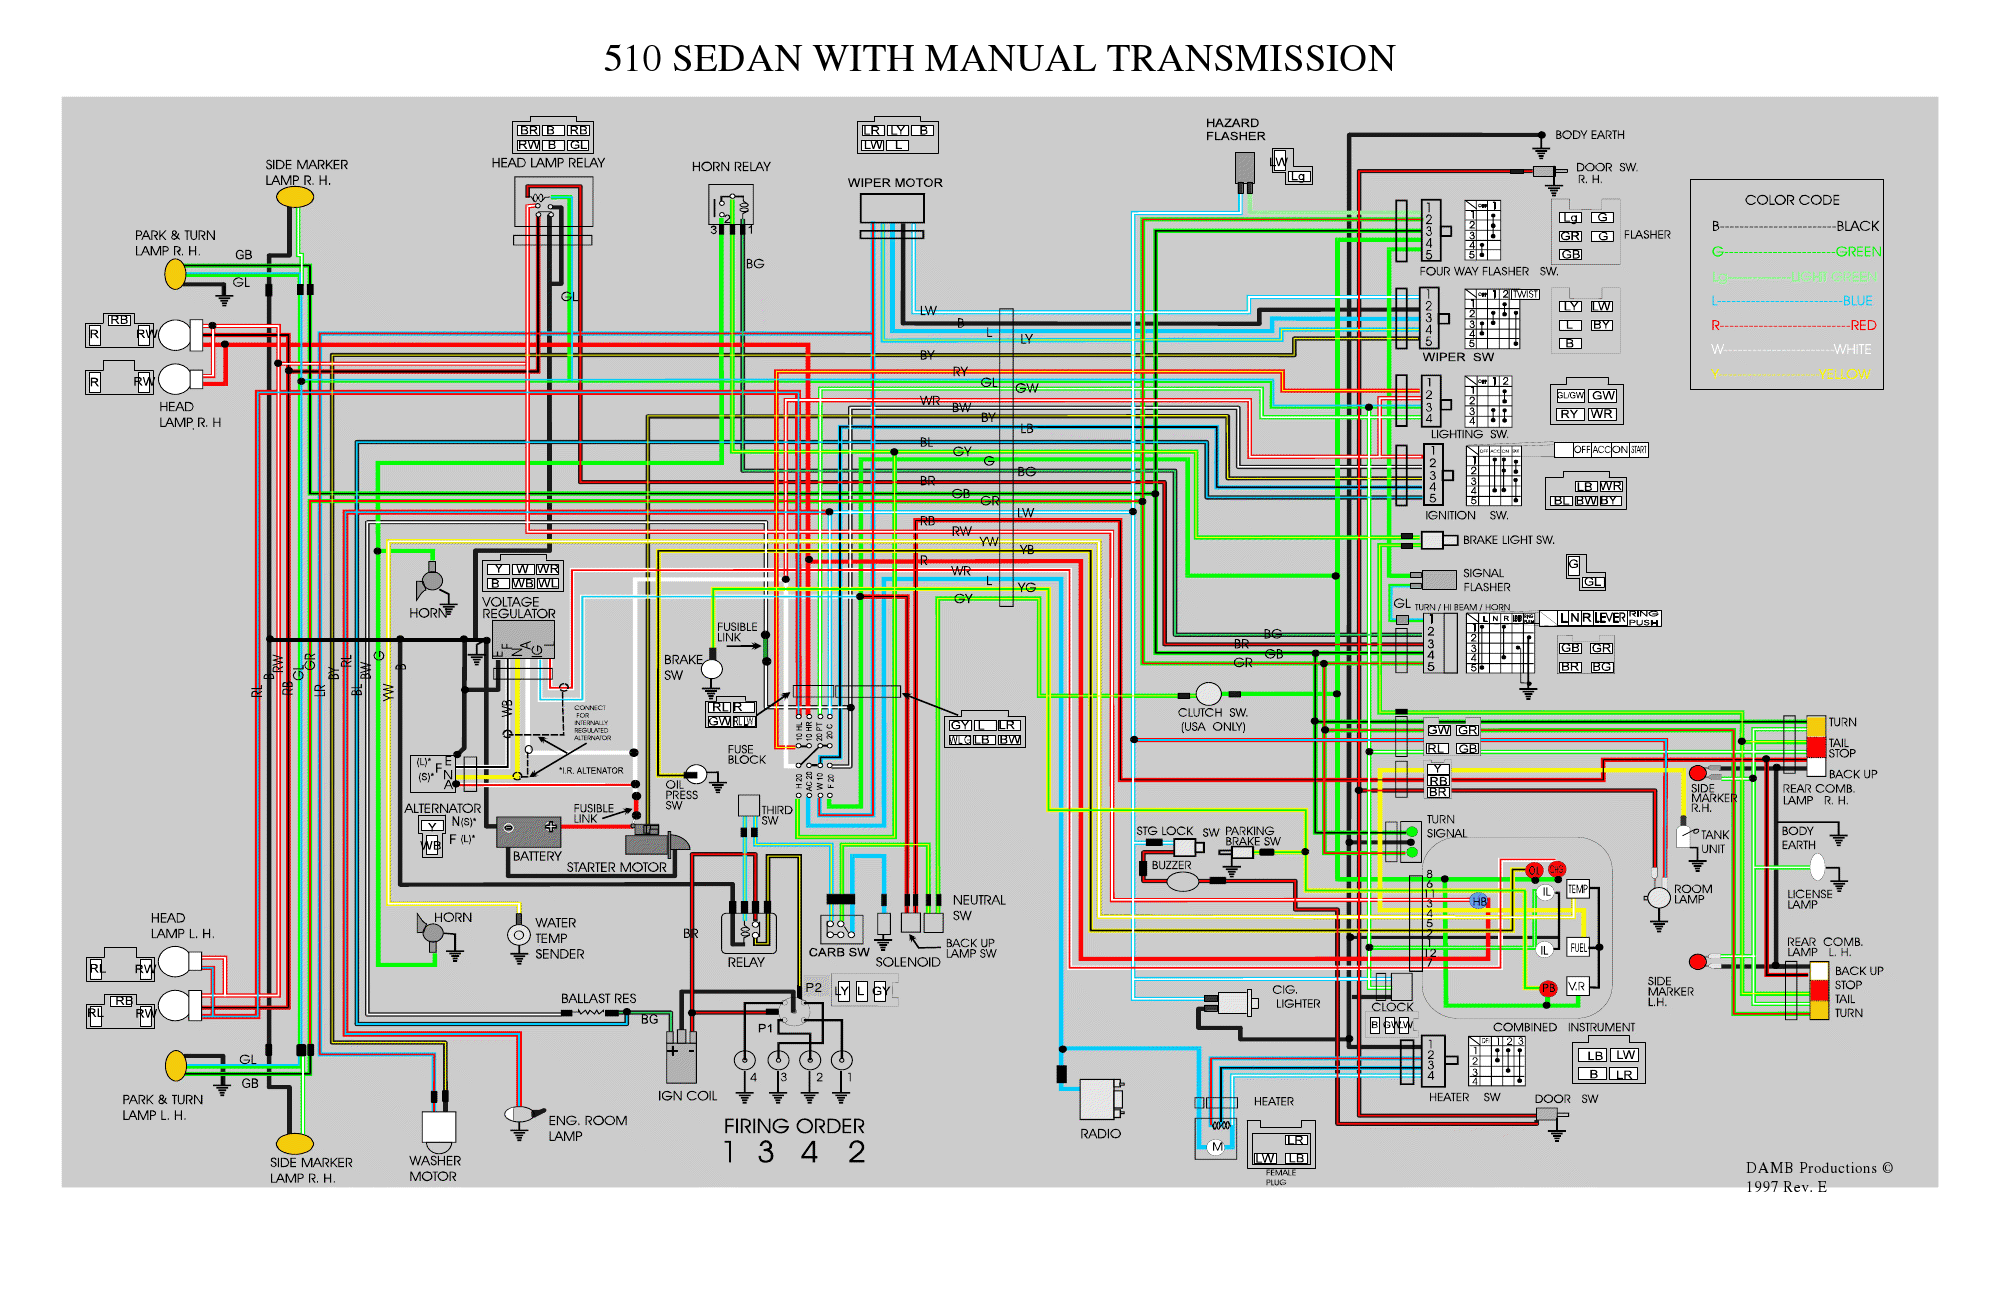 Datsun 510 Wiring Diagram on car stereo color wiring diagram